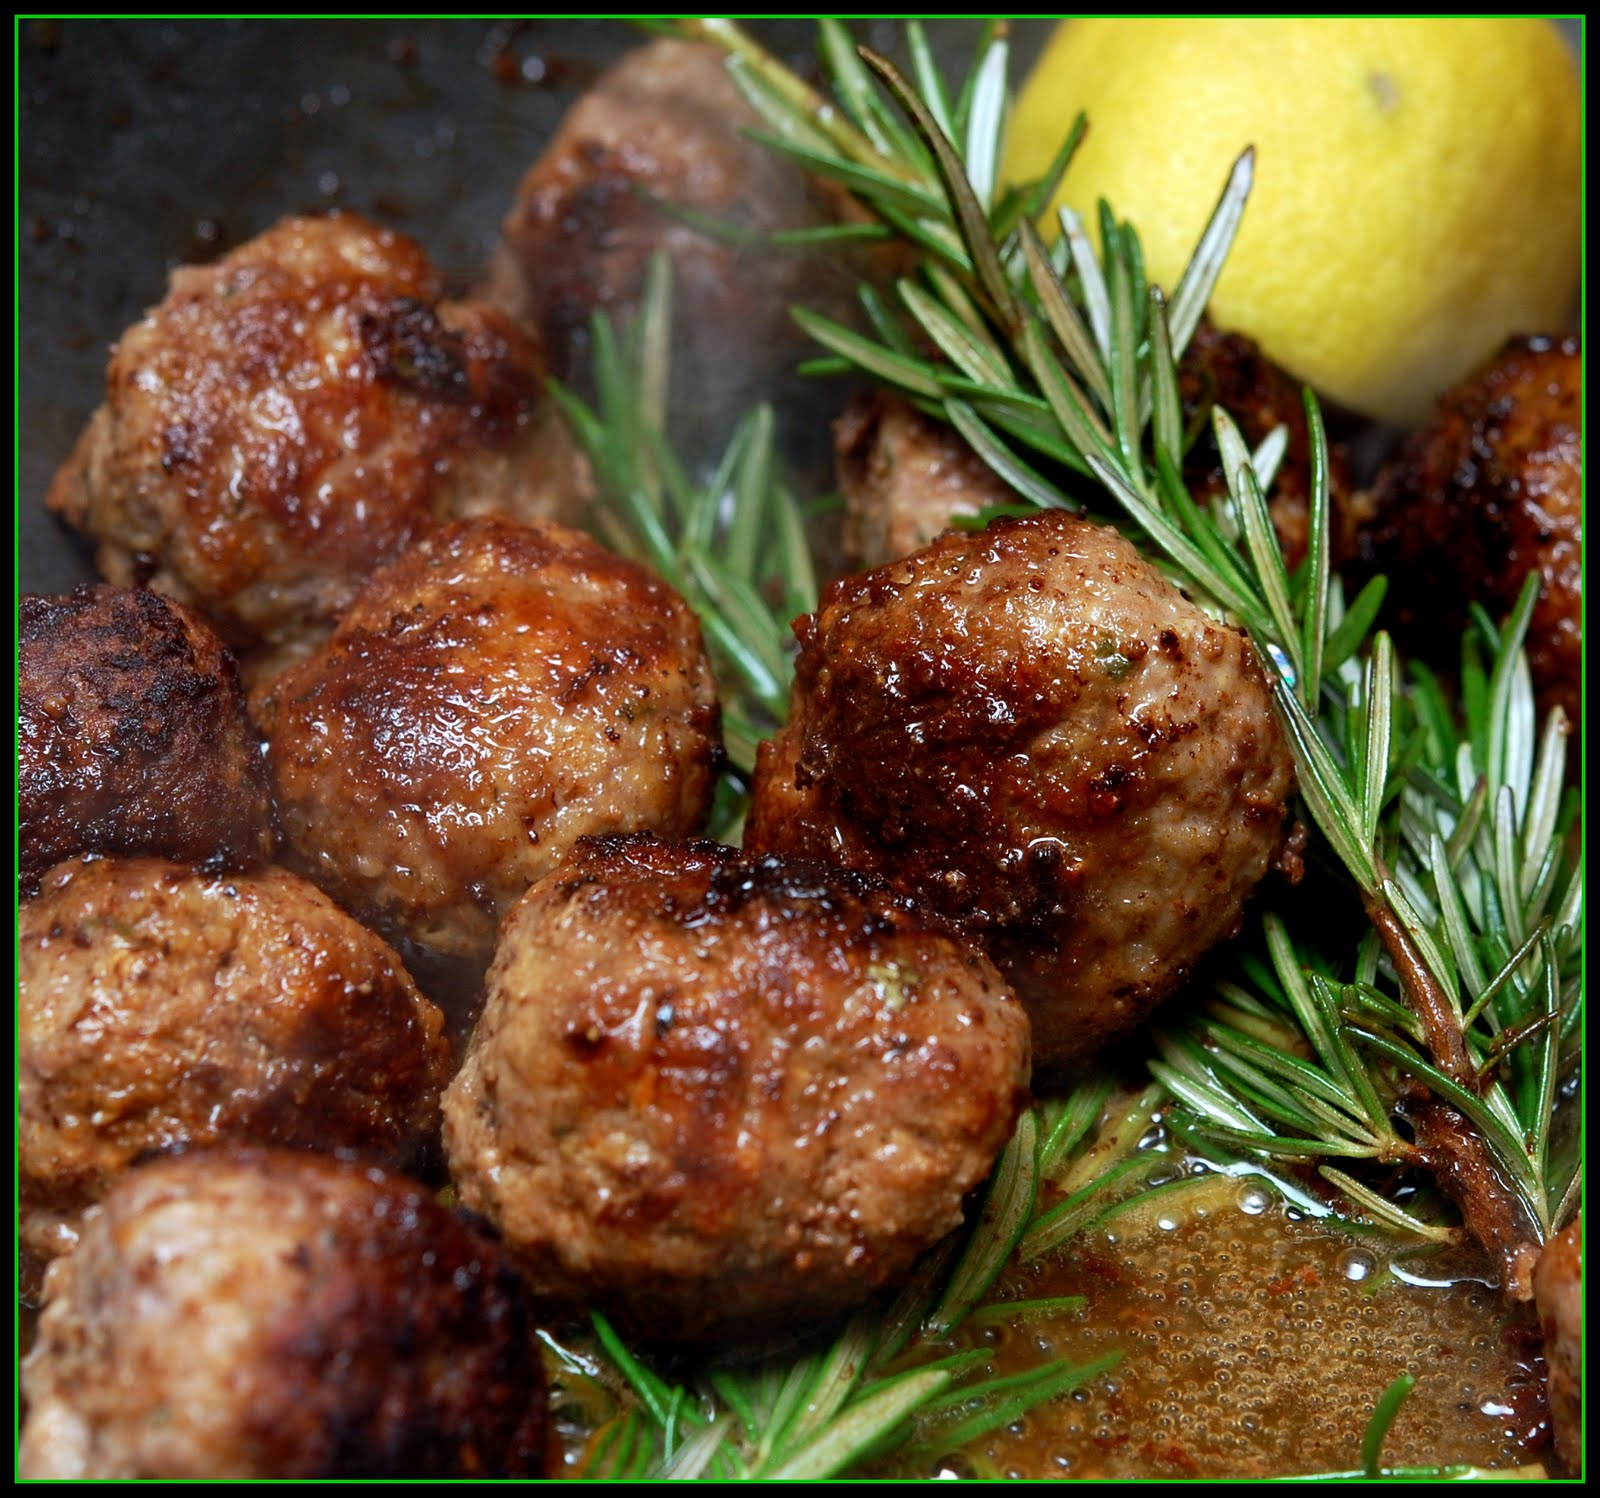 LEMON ROSEMARY MEATBALLS! MMMMMMMM! - Hugs and Cookies XOXO